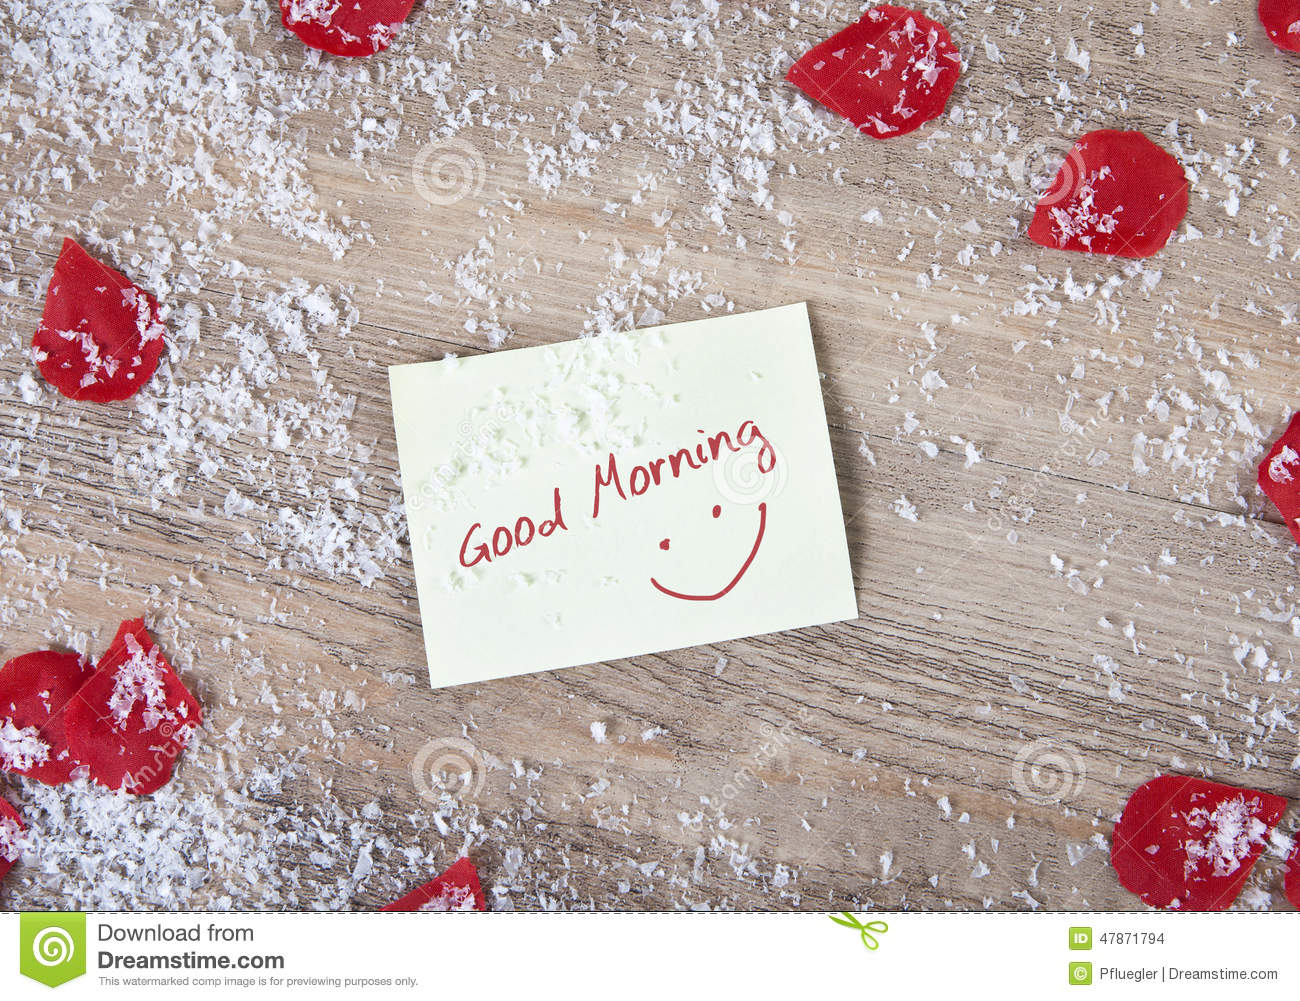 Good Morning Love Symbol : Good morning snow and roses flowers stock photo image